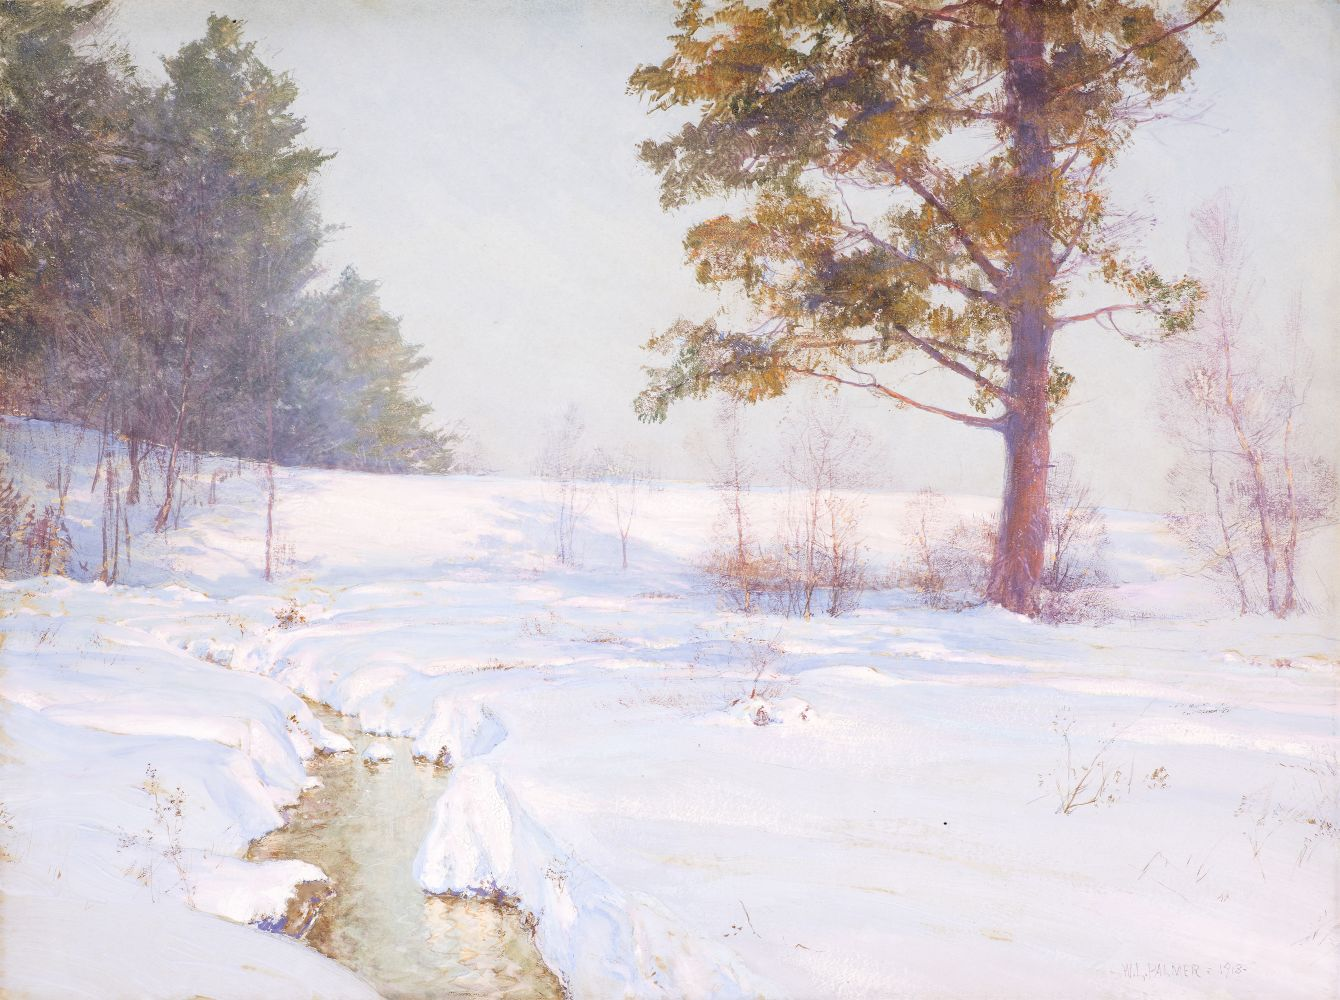 Walter Launt Palmer (1854–1932), Stream in Winter, 1913, watercolor and gouache on paper, 18 x 24 in., signed and dated lower right: W. L. Palmer 1913